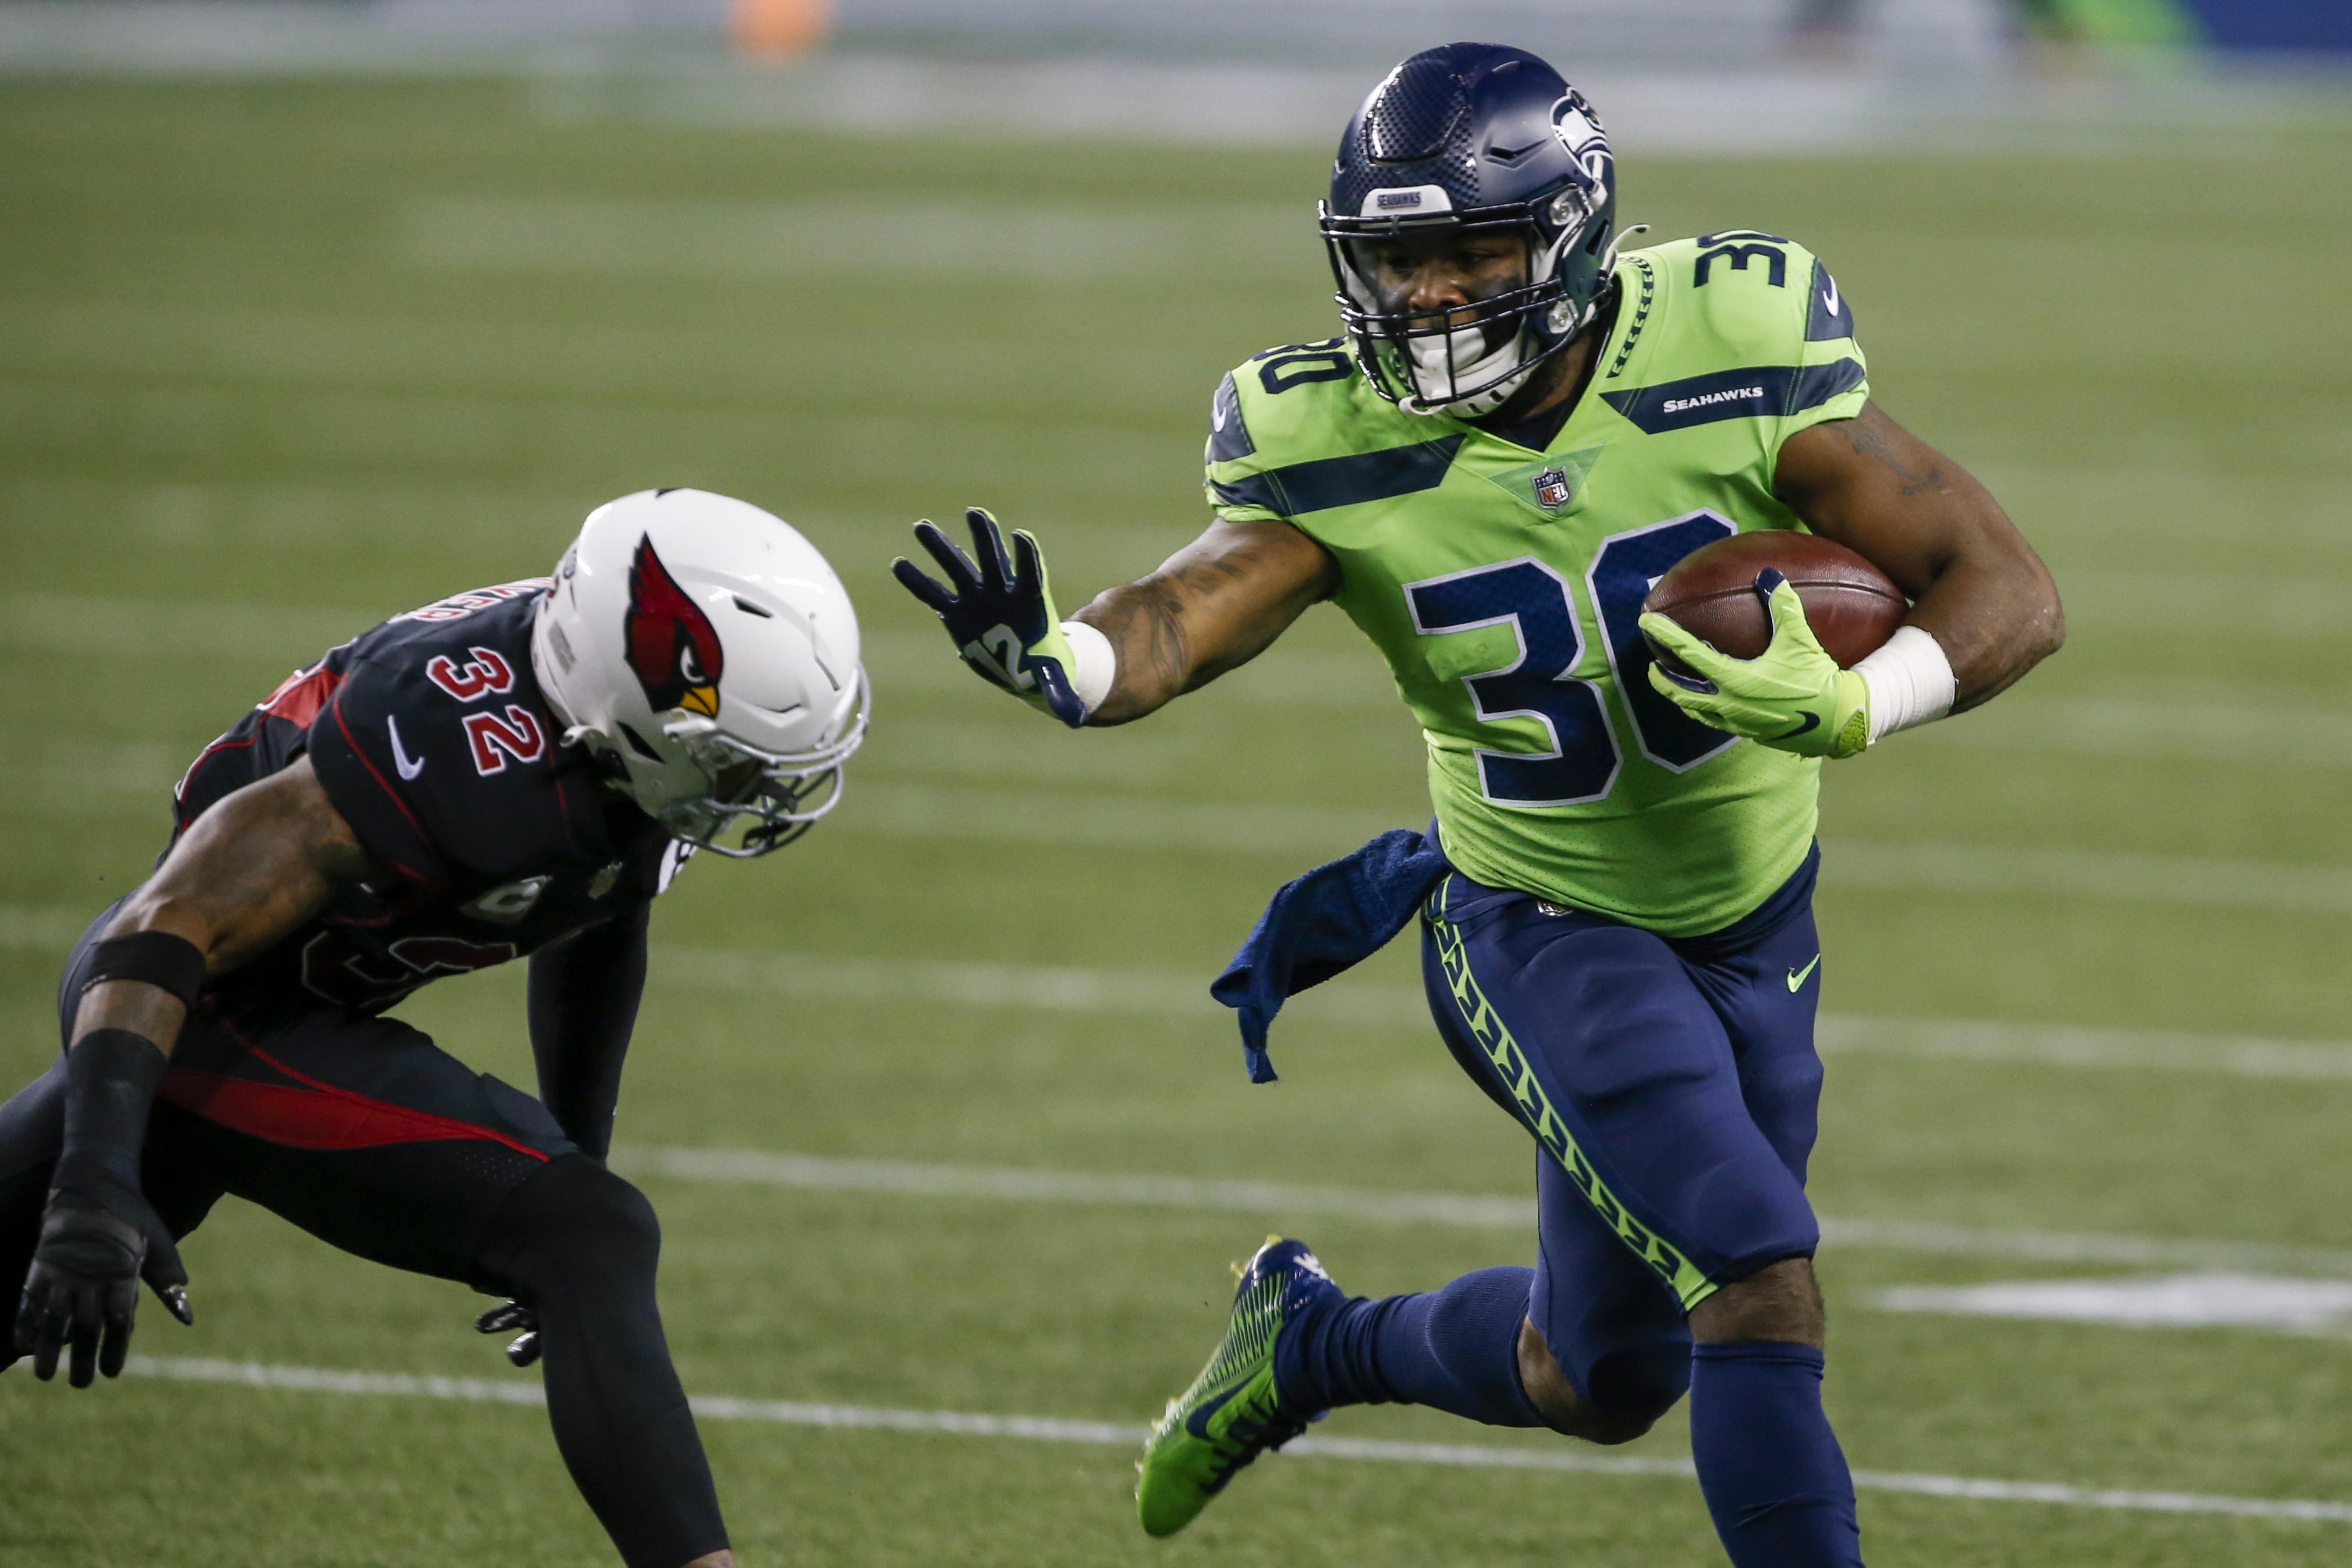 Seattle Seahawks running back Carlos Hyde runs the ball against Arizona Cardinals safety Budda Baker (32) during the first quarter at Lumen Field.